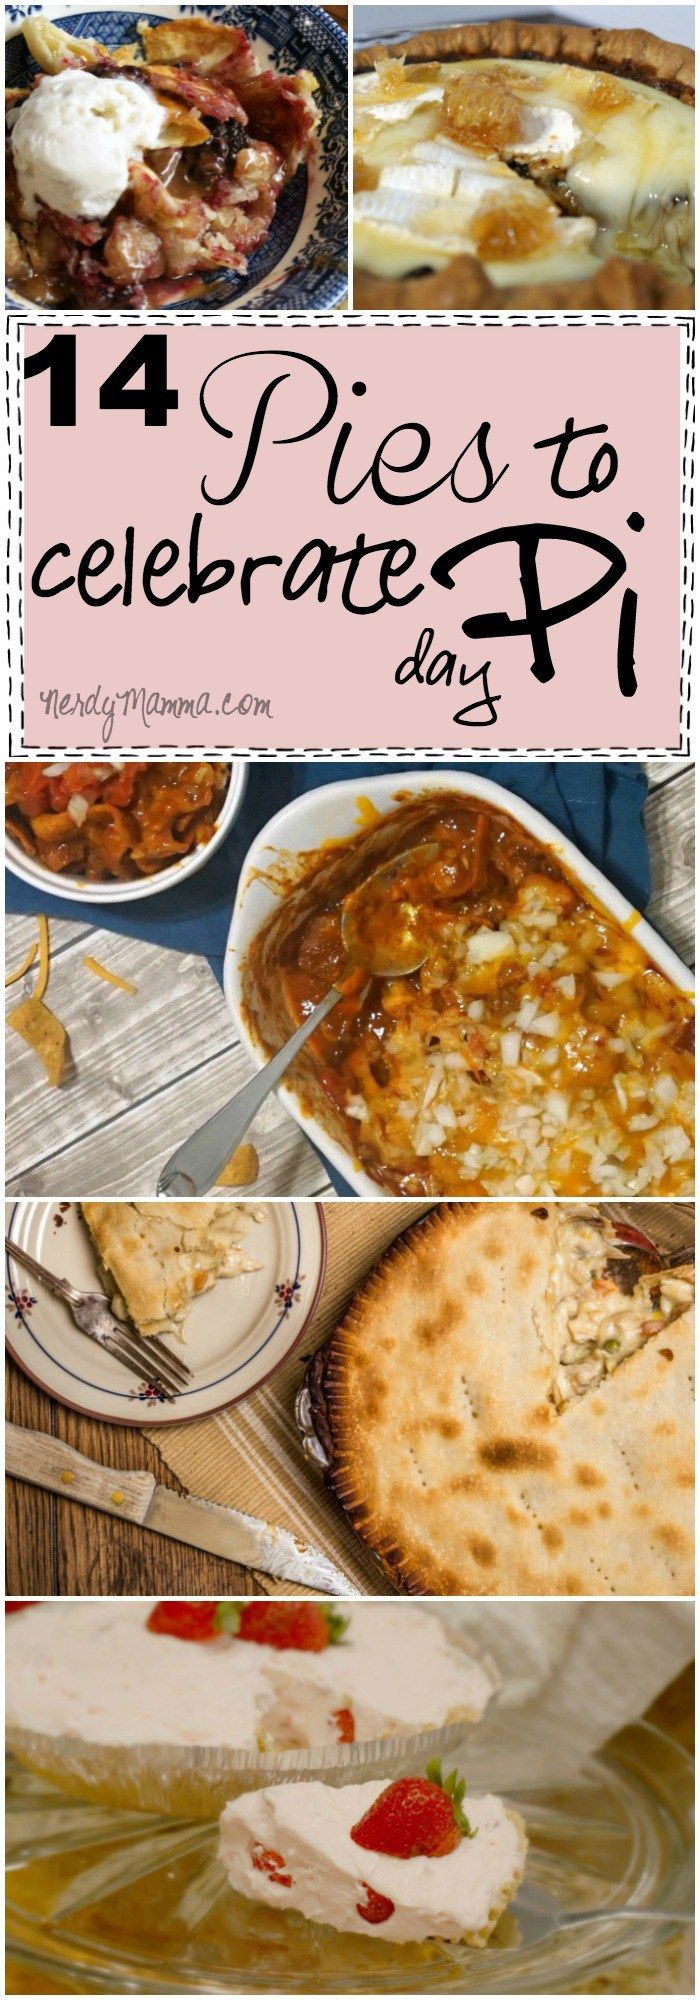 These 14 Pies to celebrate pi day are just--well, full of pie! LOL!